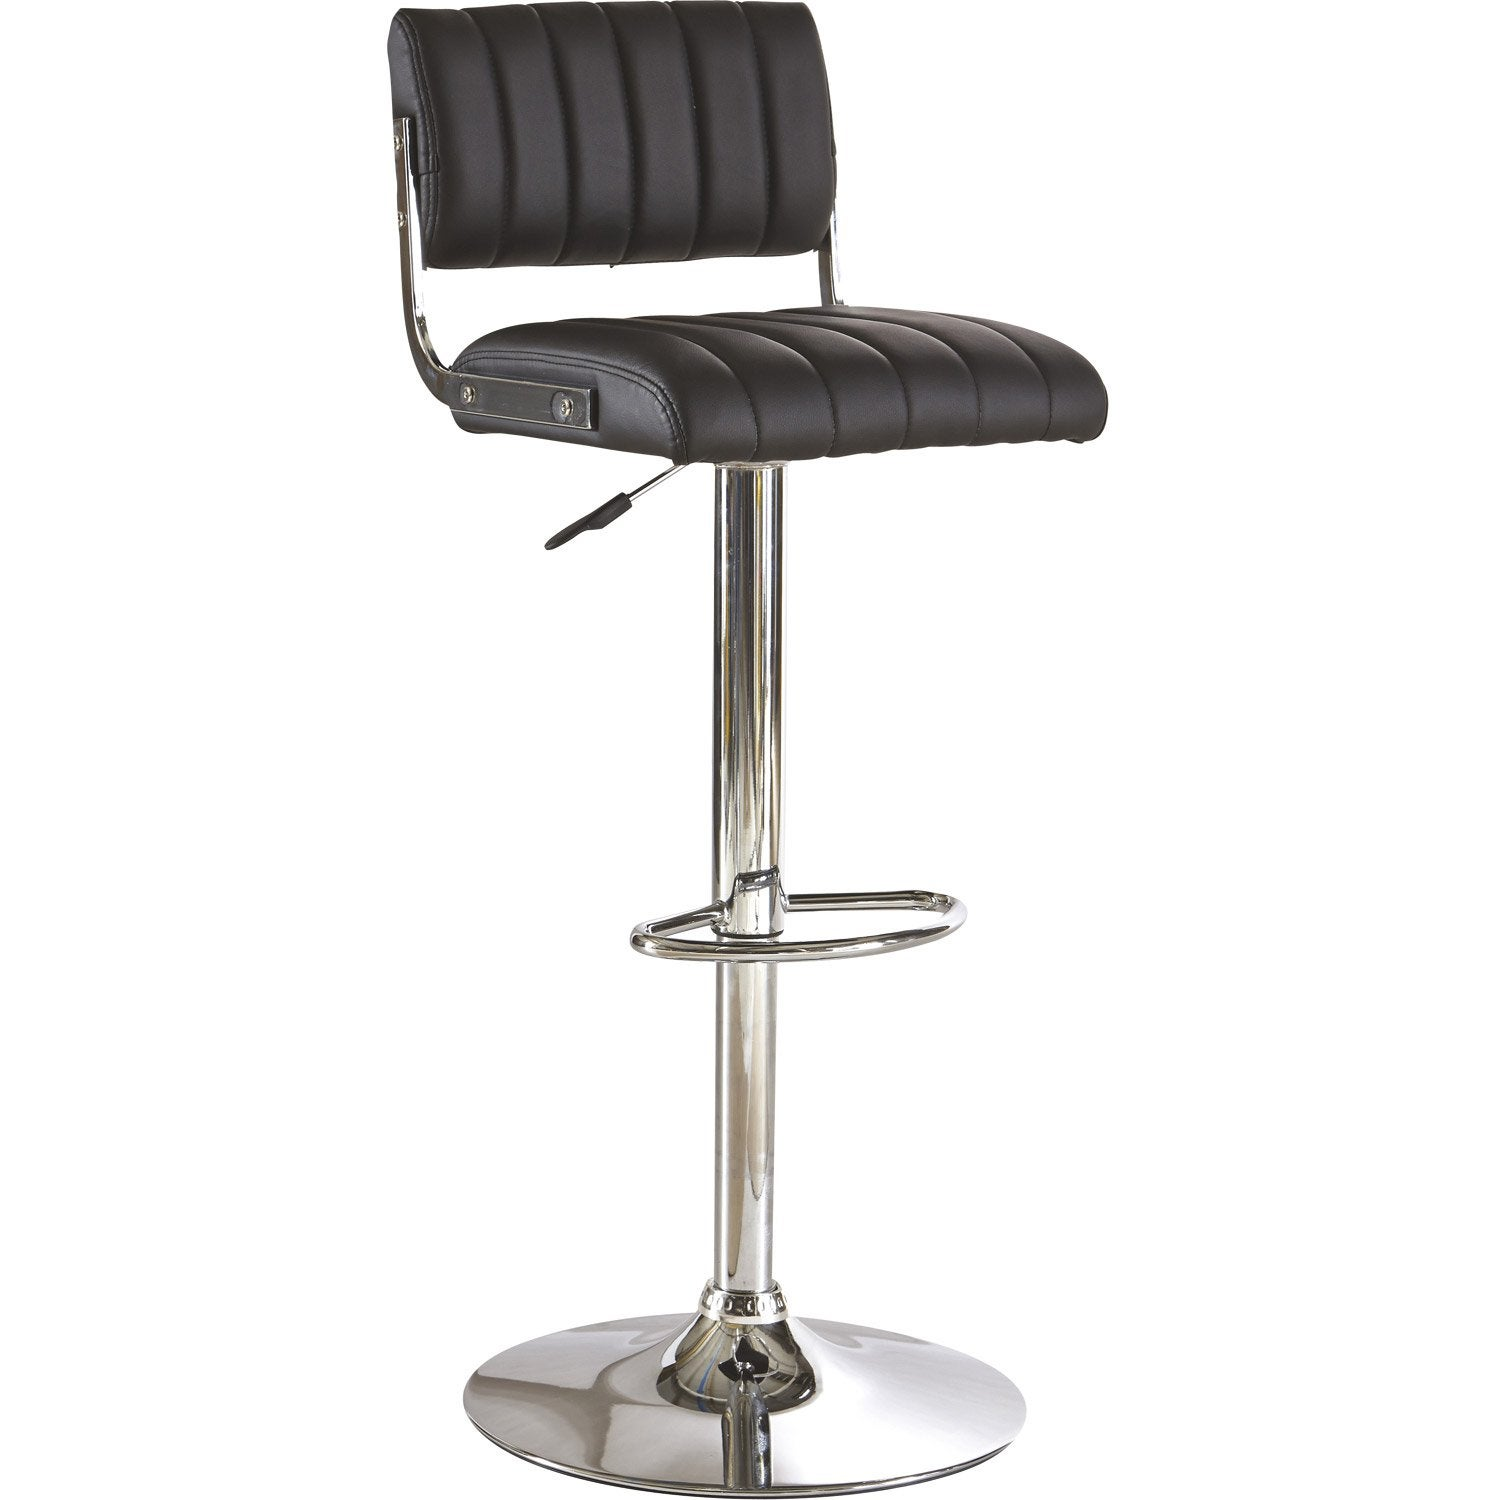 Assise de tabouret de bar sans le pied maison design - Pied de tabouret bar chrome ...